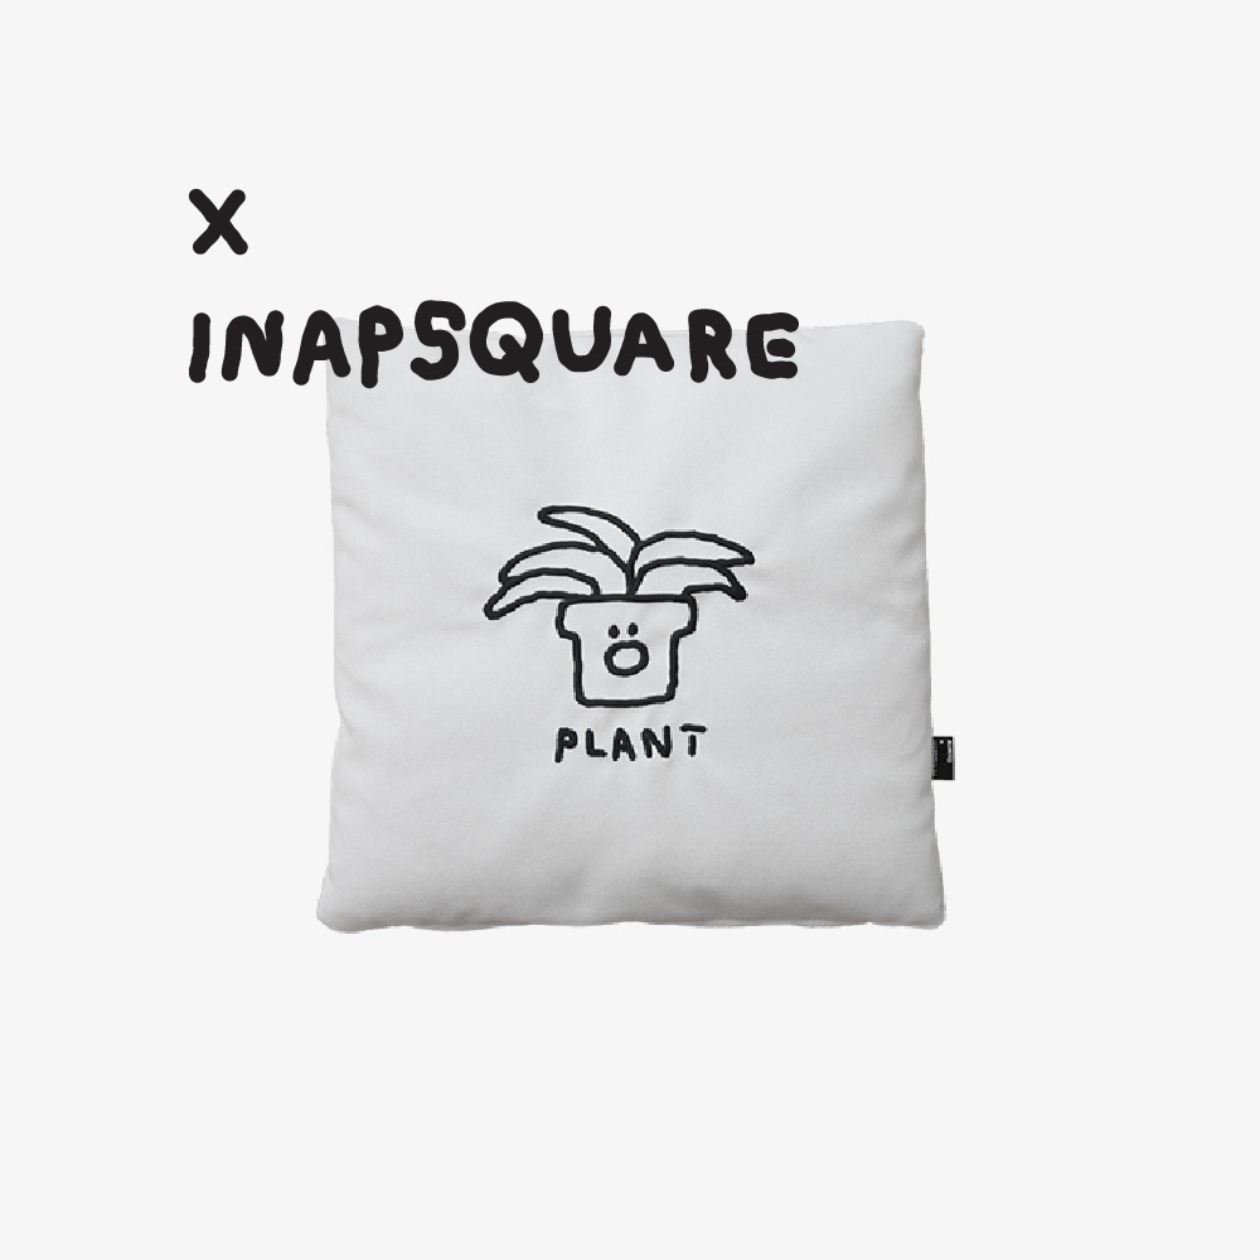 LAZY CUSHION / INAPSQUARE PLANT EDITION